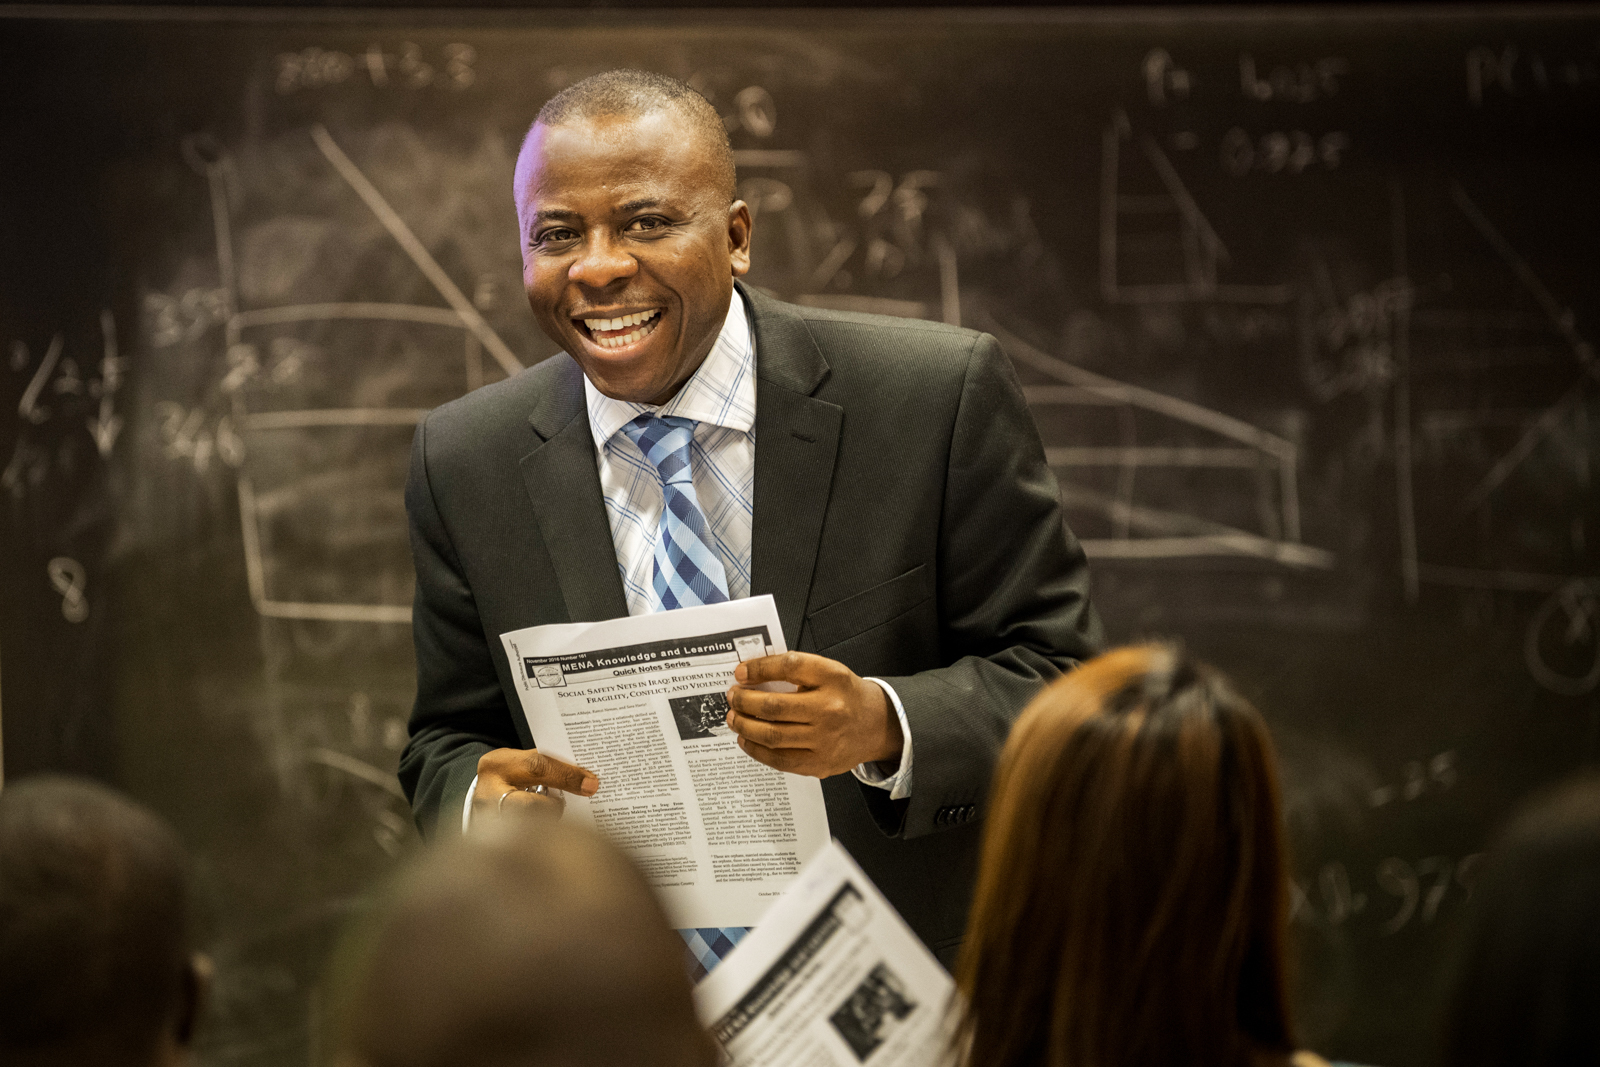 Instructor smiling in class, in front of blackboard